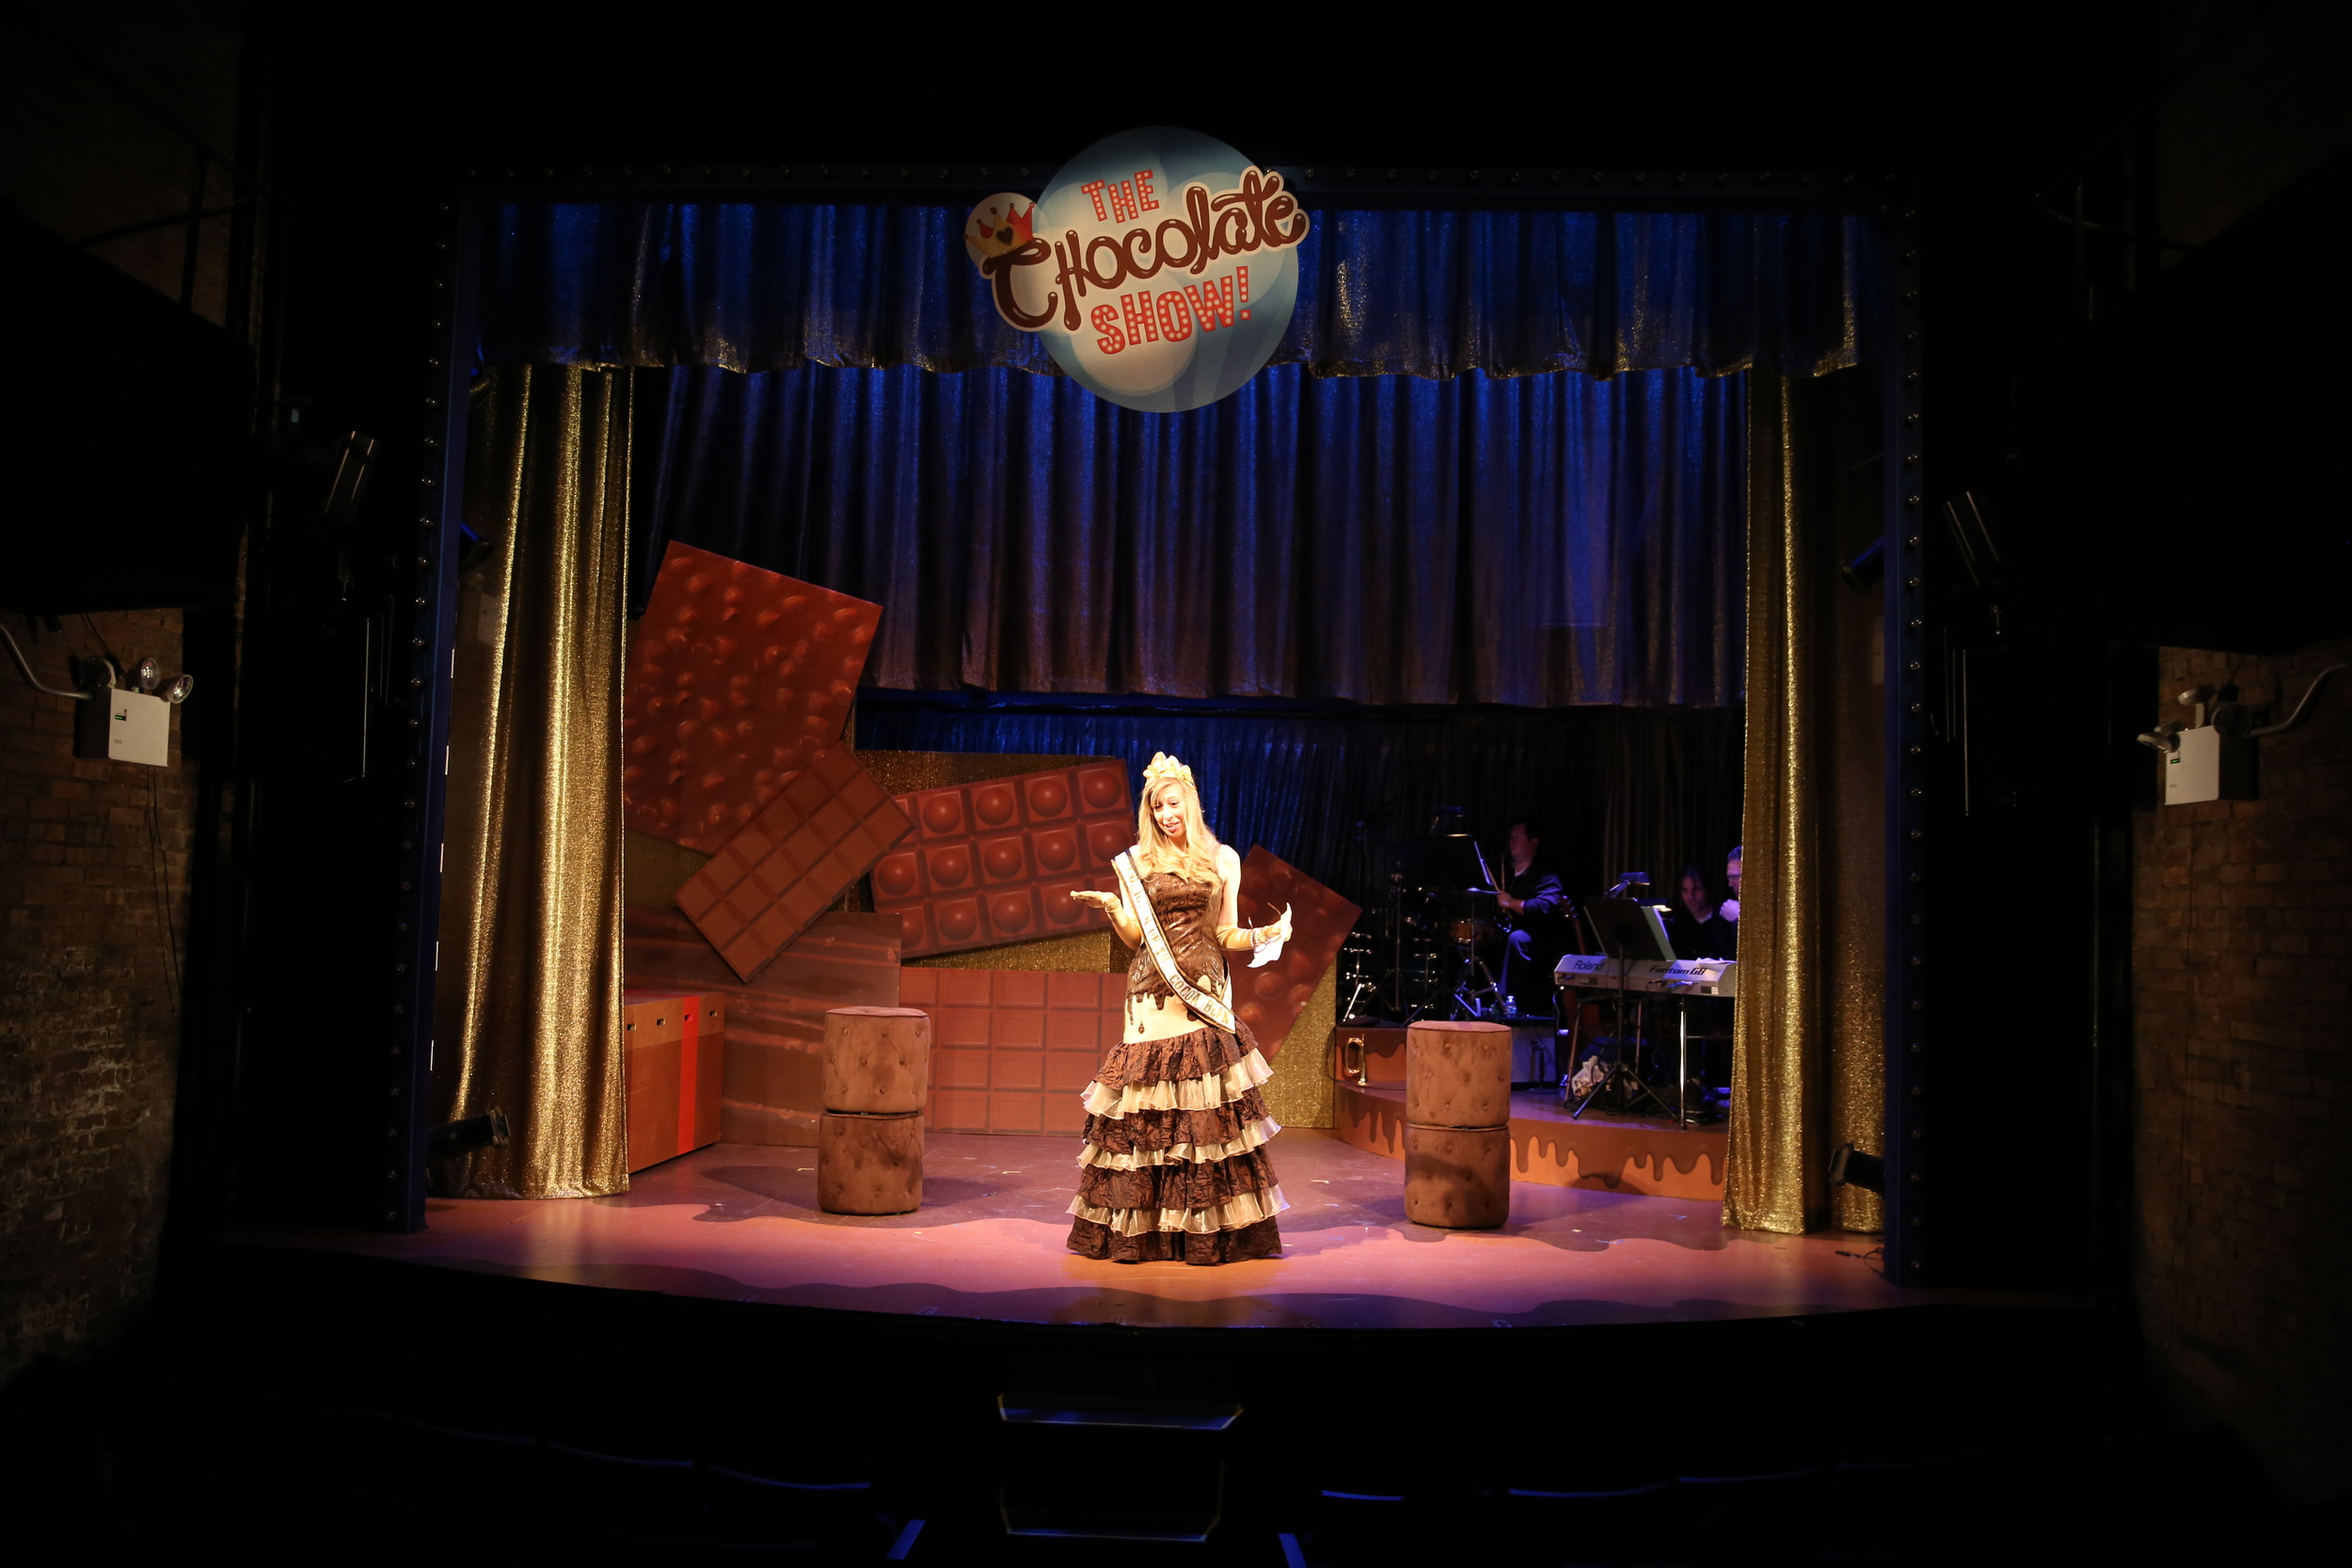 THE CHOCOLATE SHOW! A TASTY NEW MUSICAL